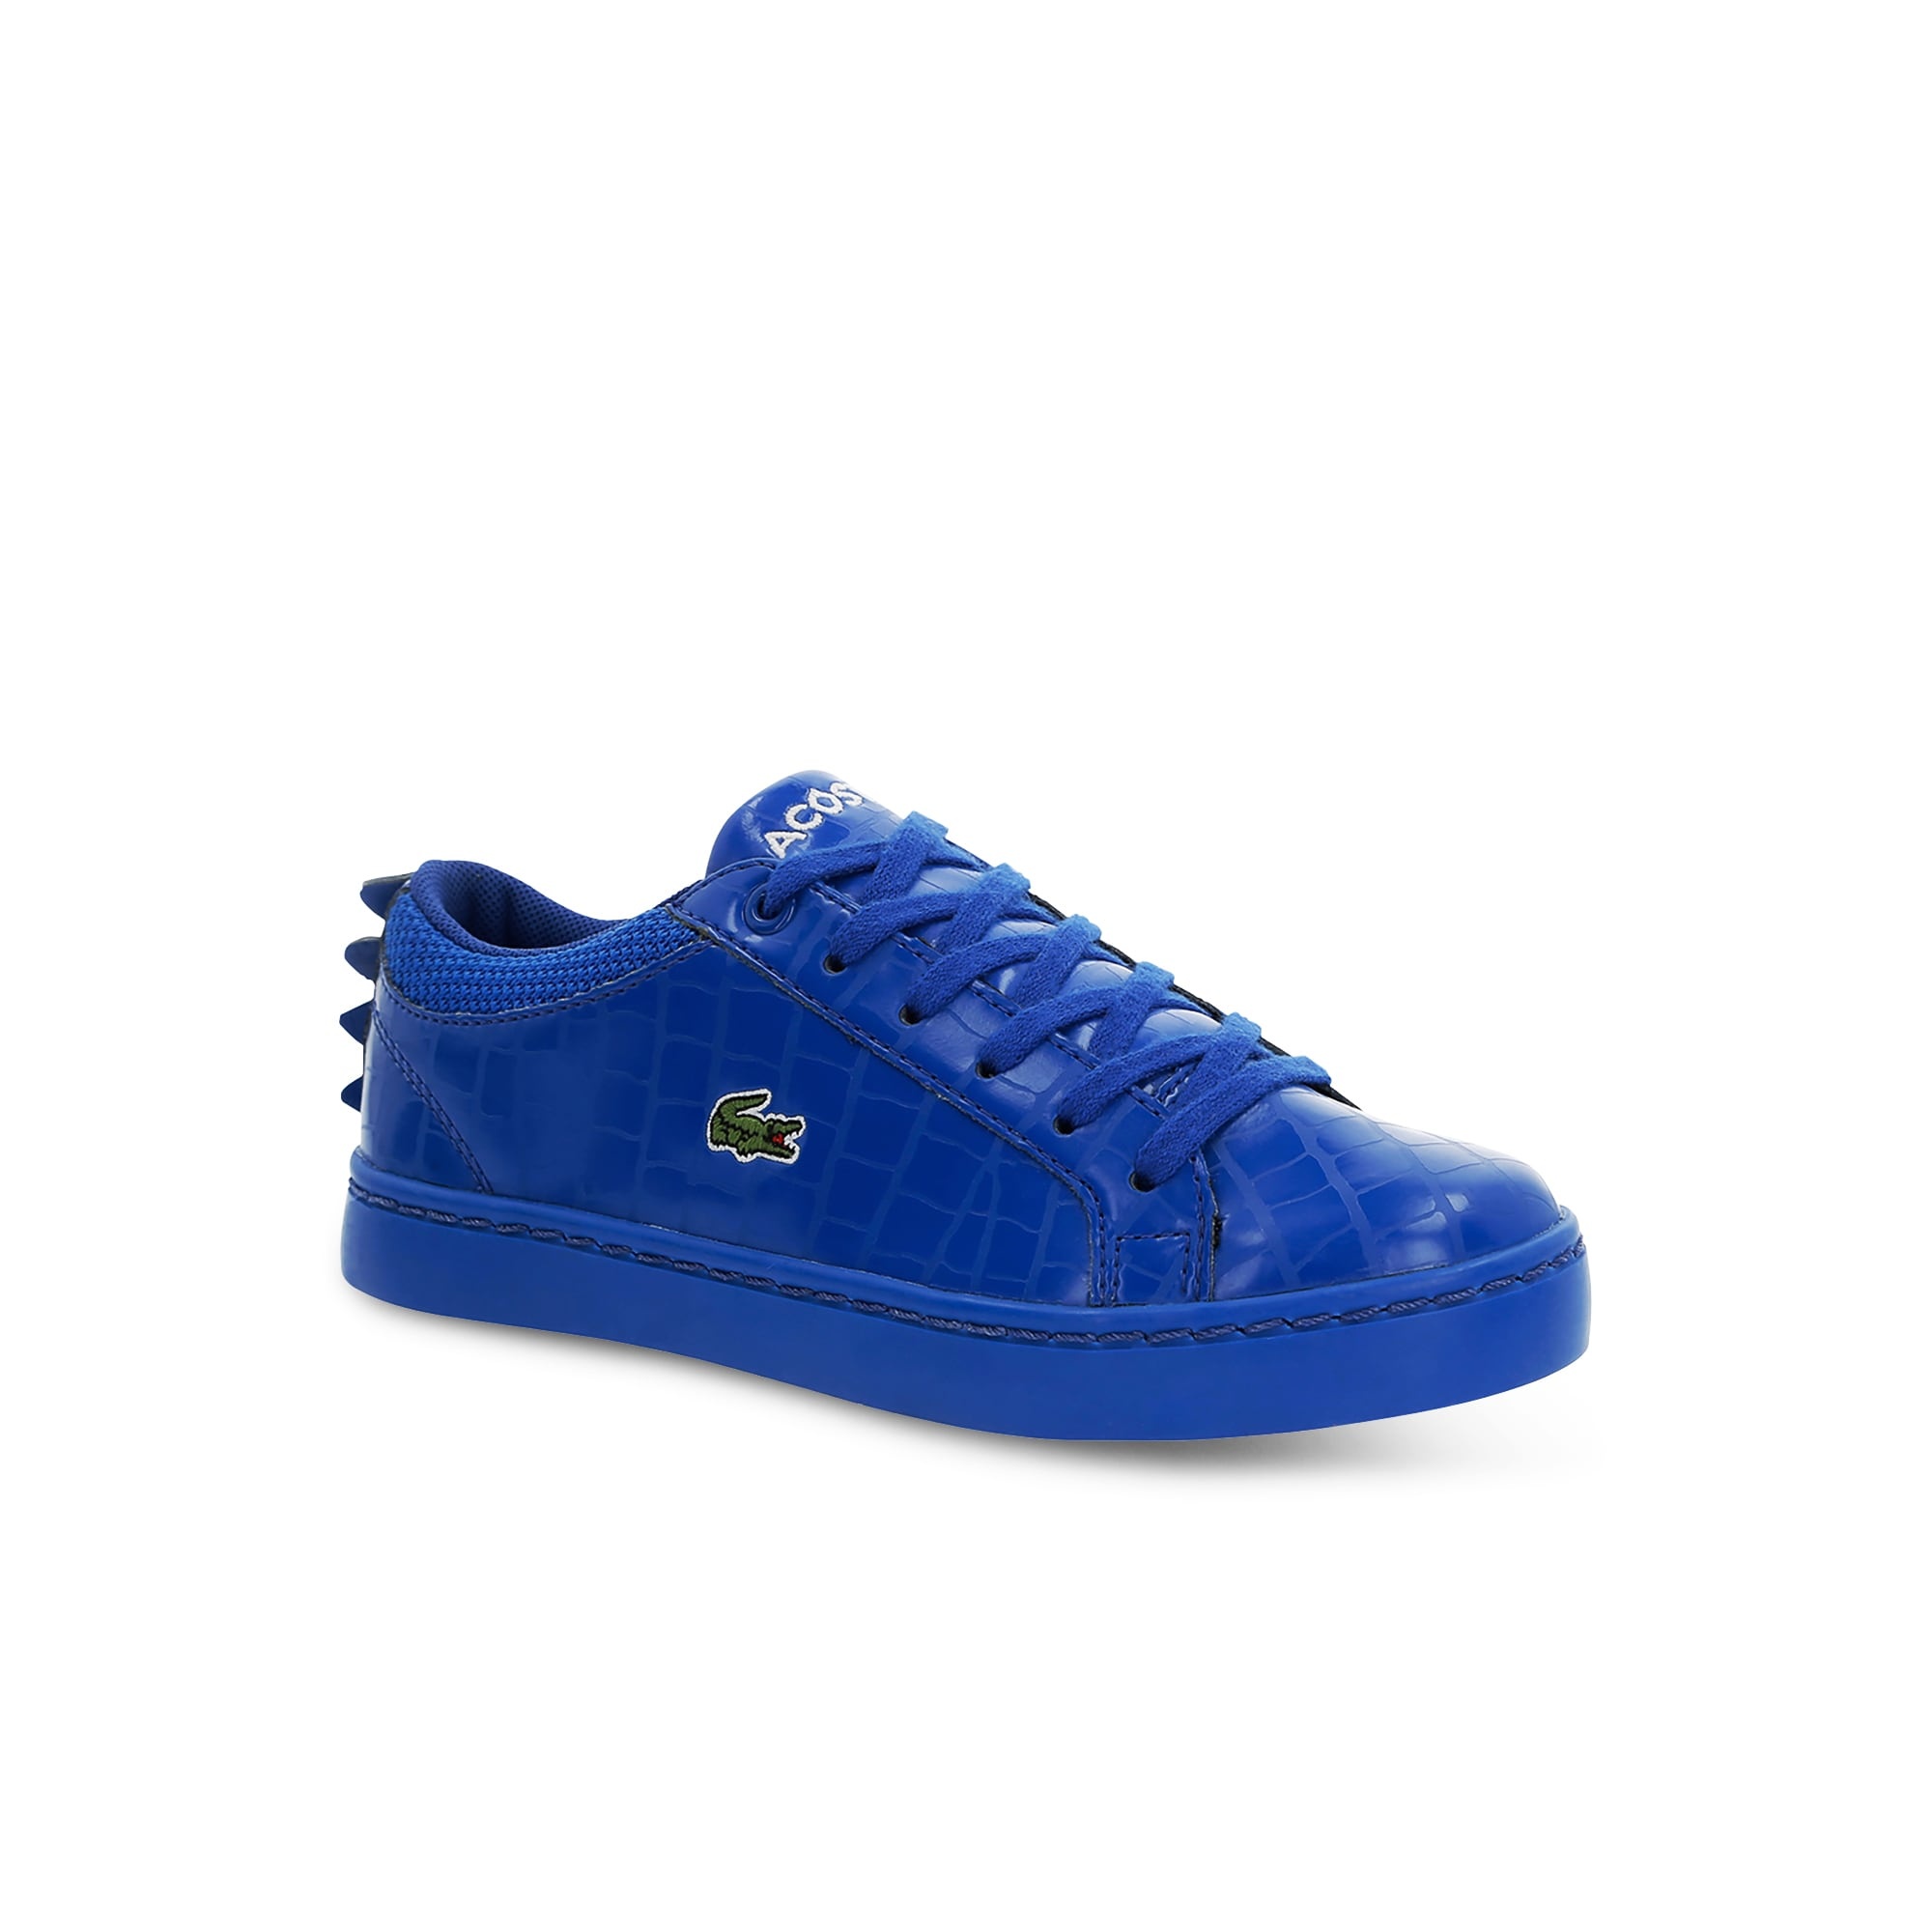 Children's Straightset Synthetic Sneakers